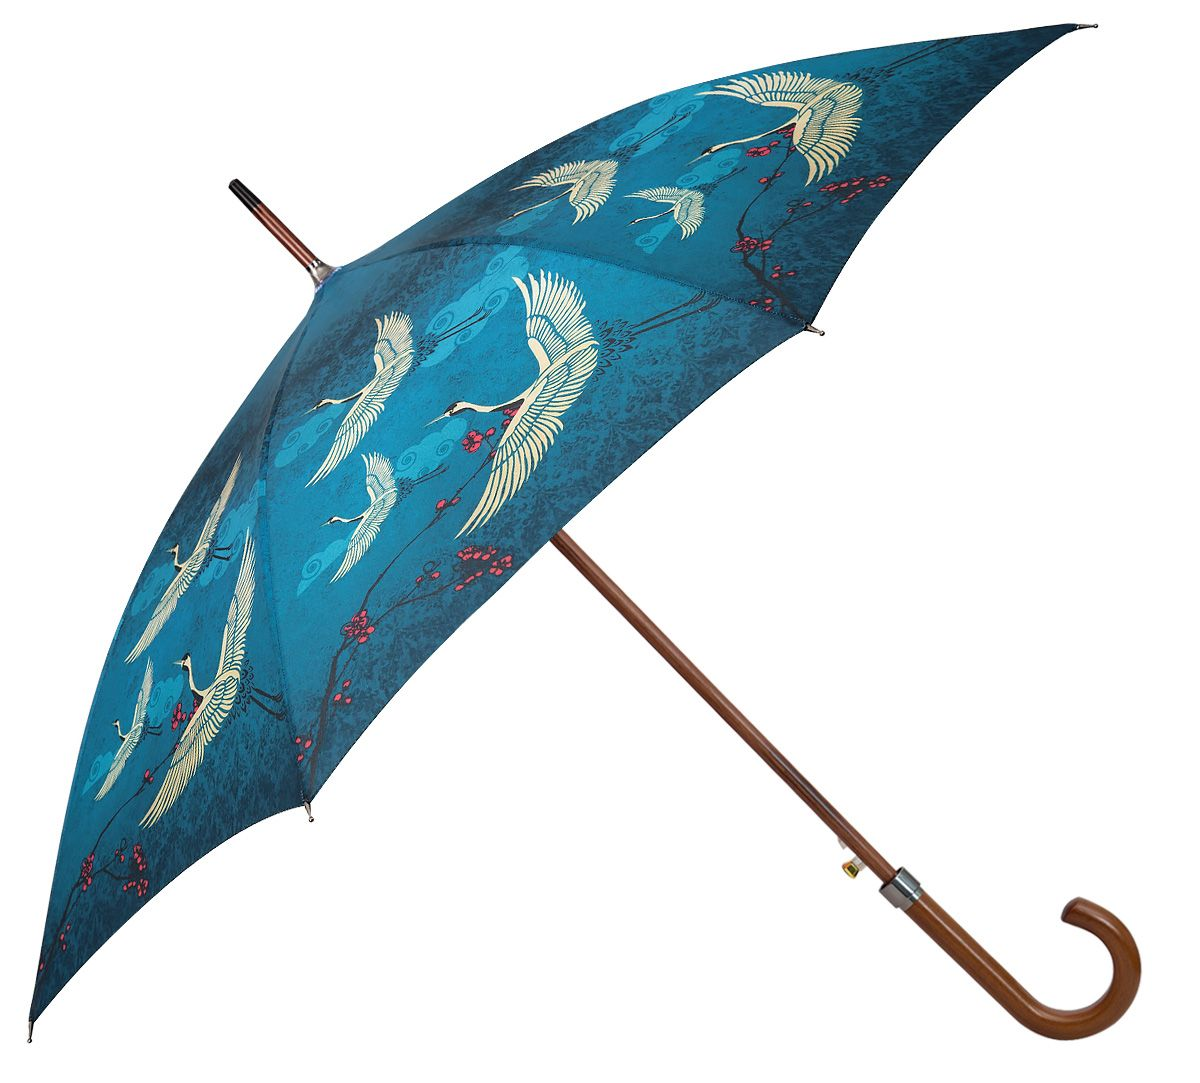 Modish Umbrellas for Women